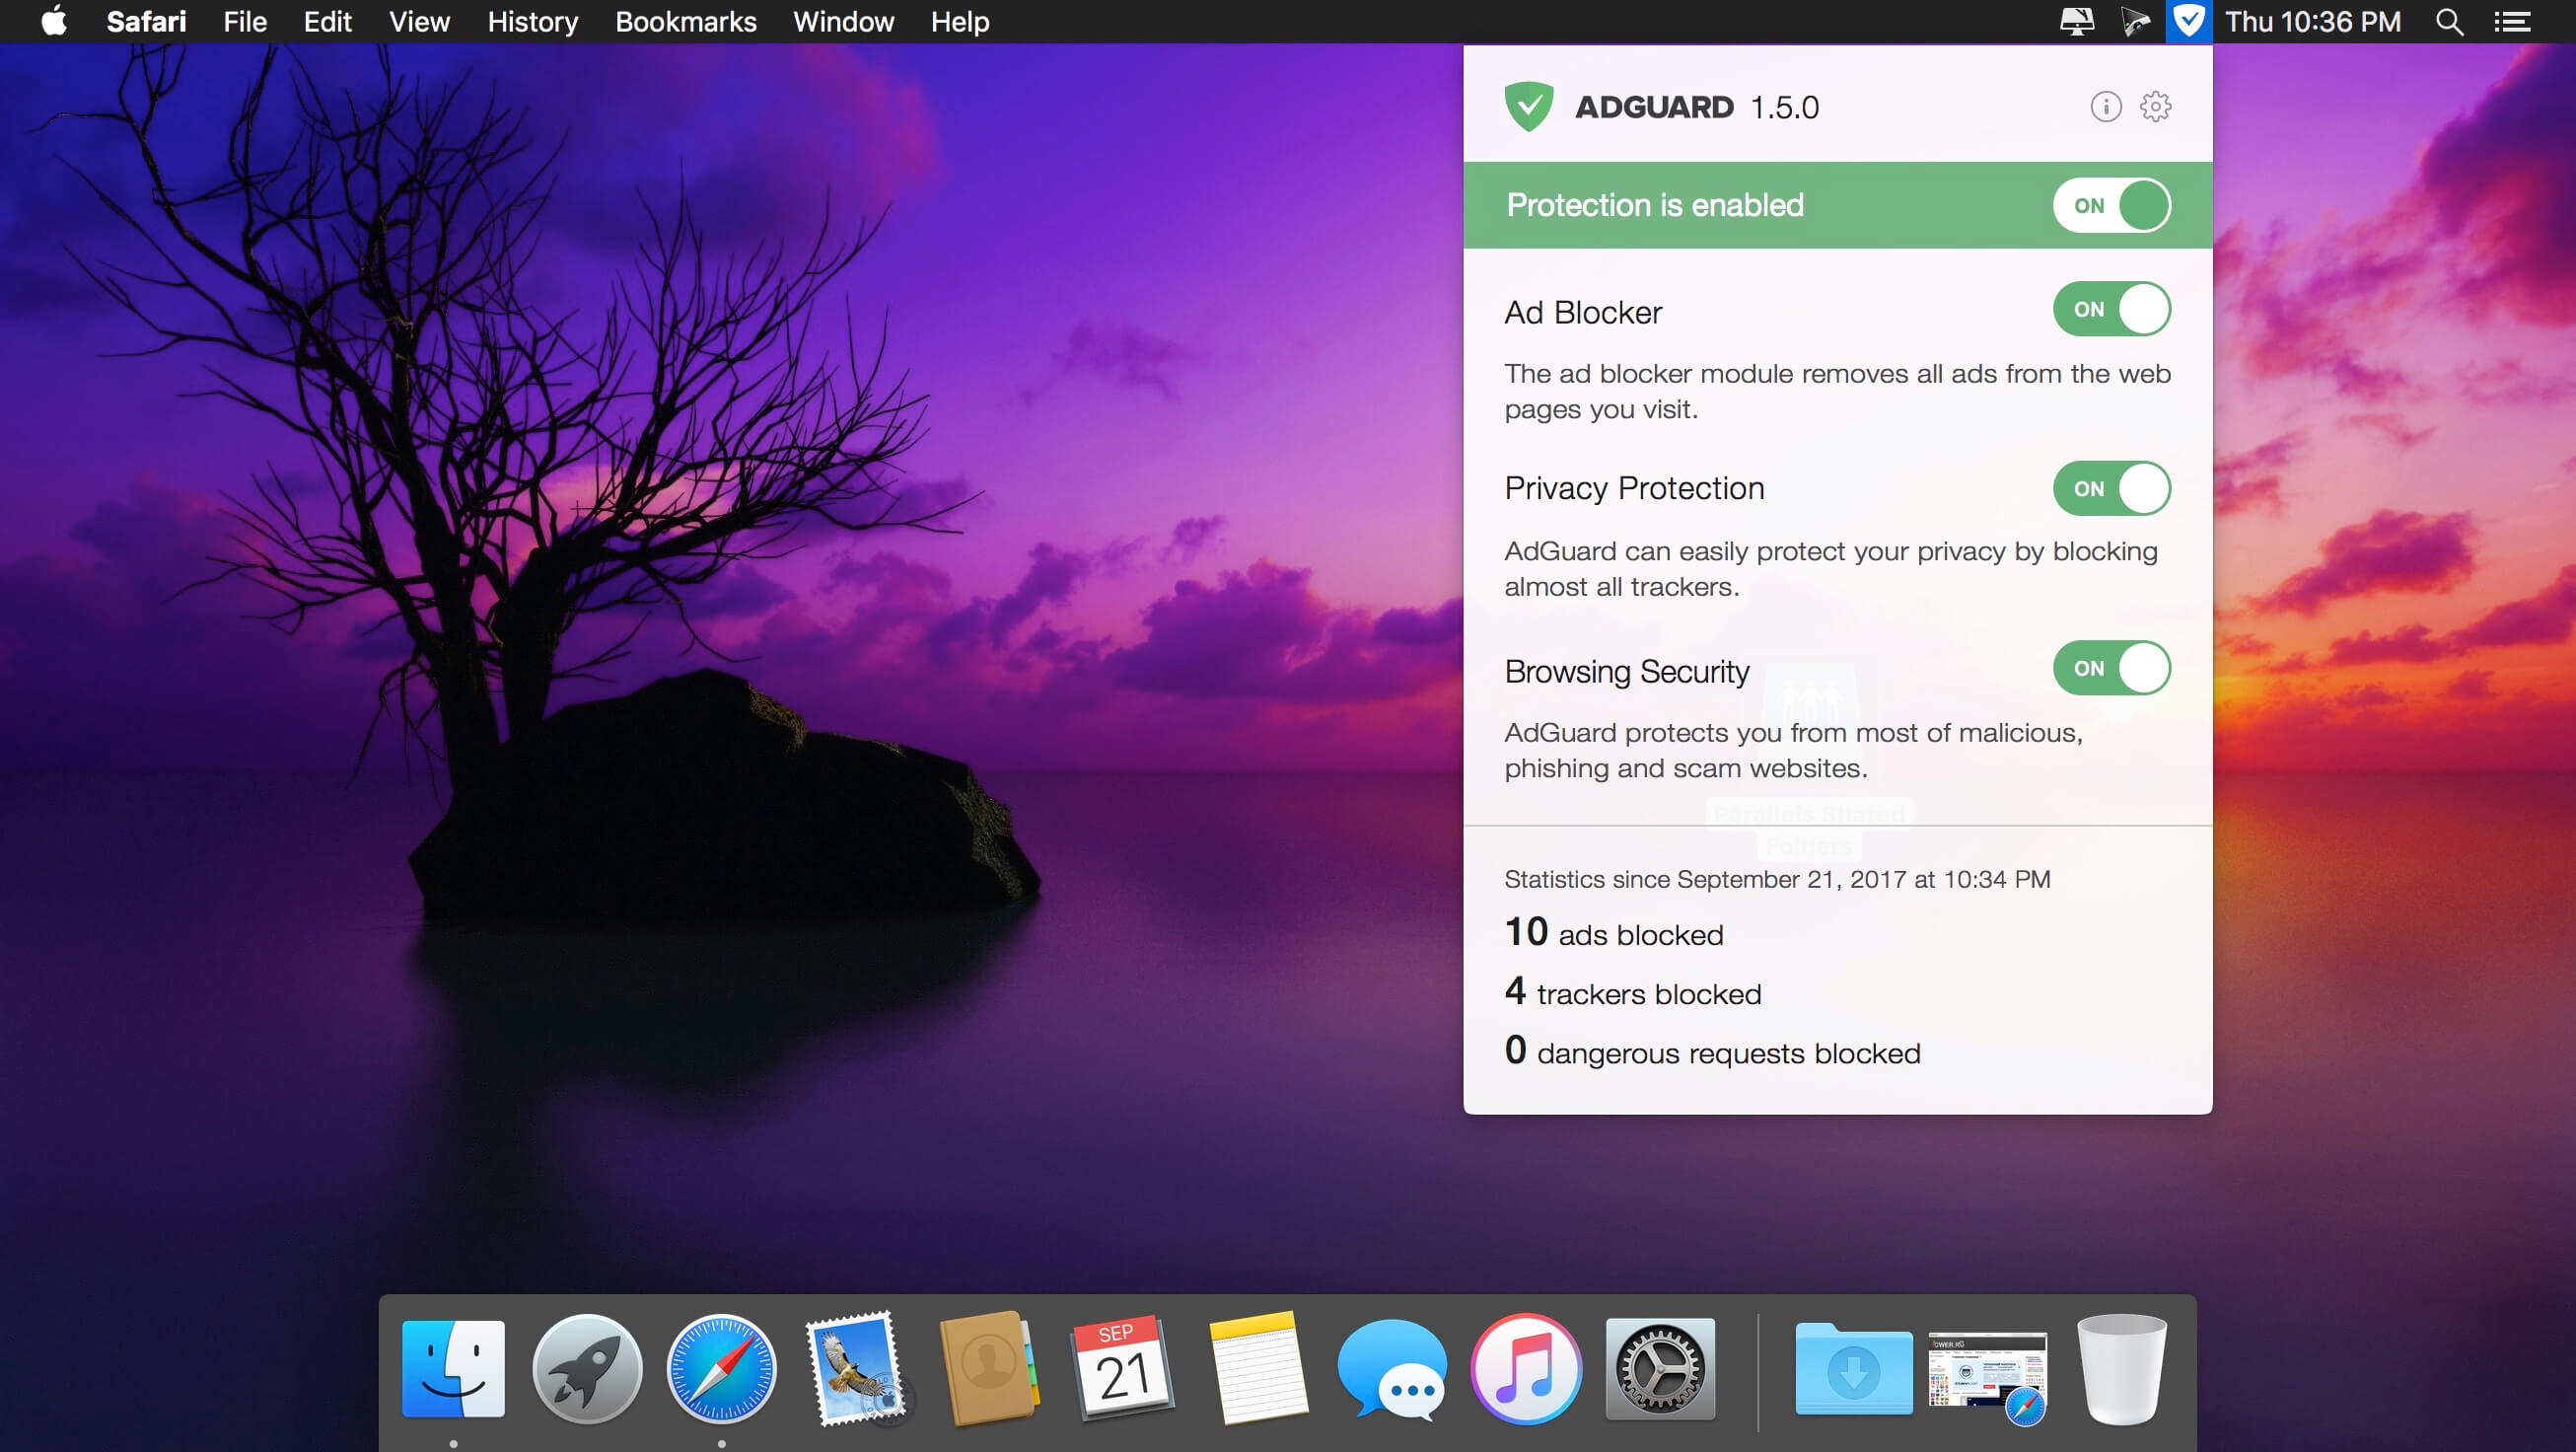 Adguard for Mac 2 1 1 (591) download | macOS